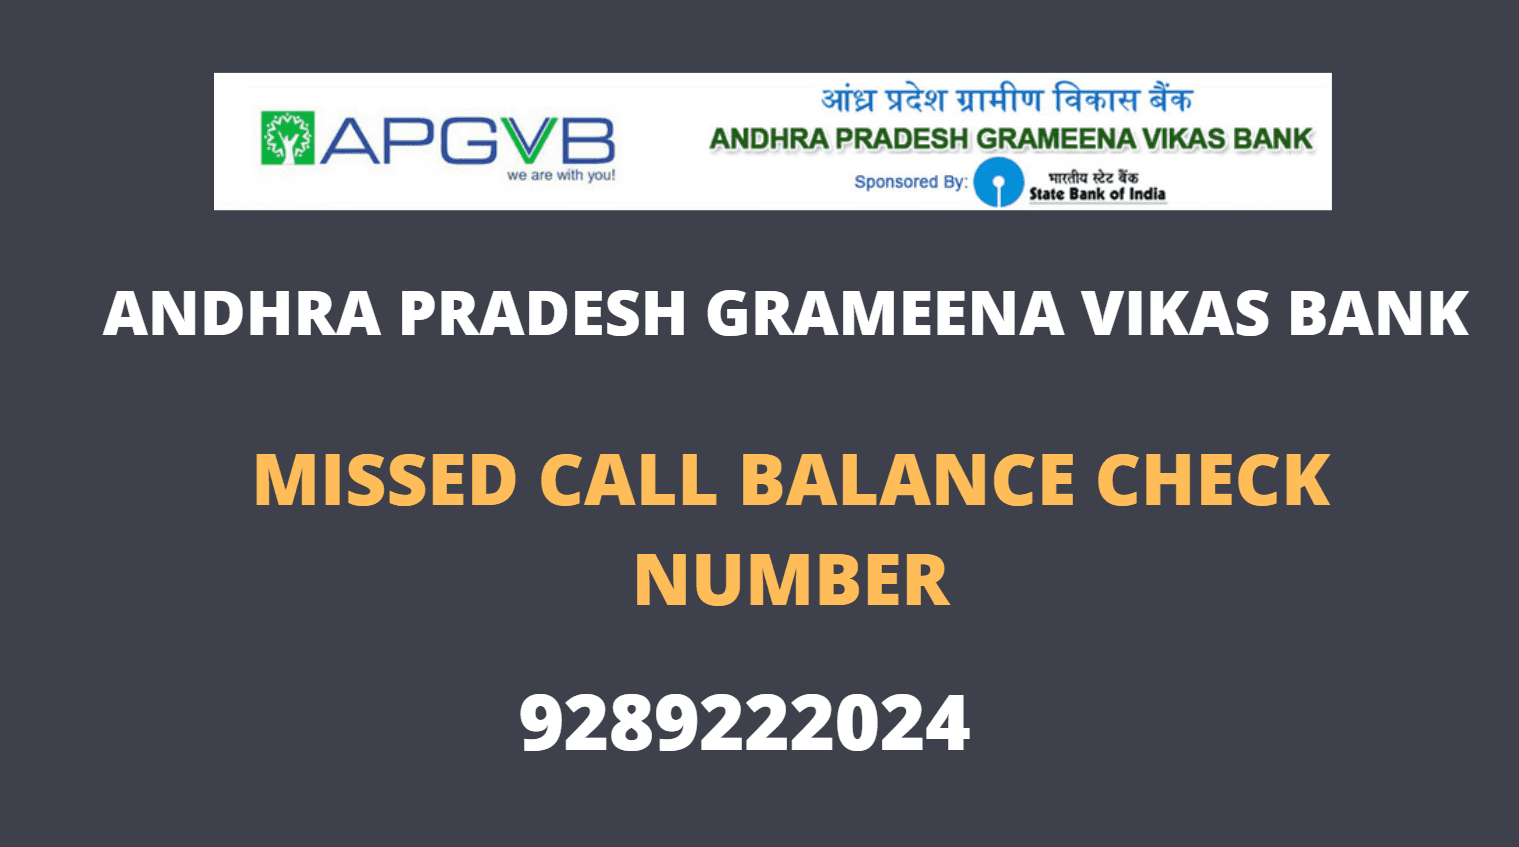 APGVB Bank missed call Balance Check Number